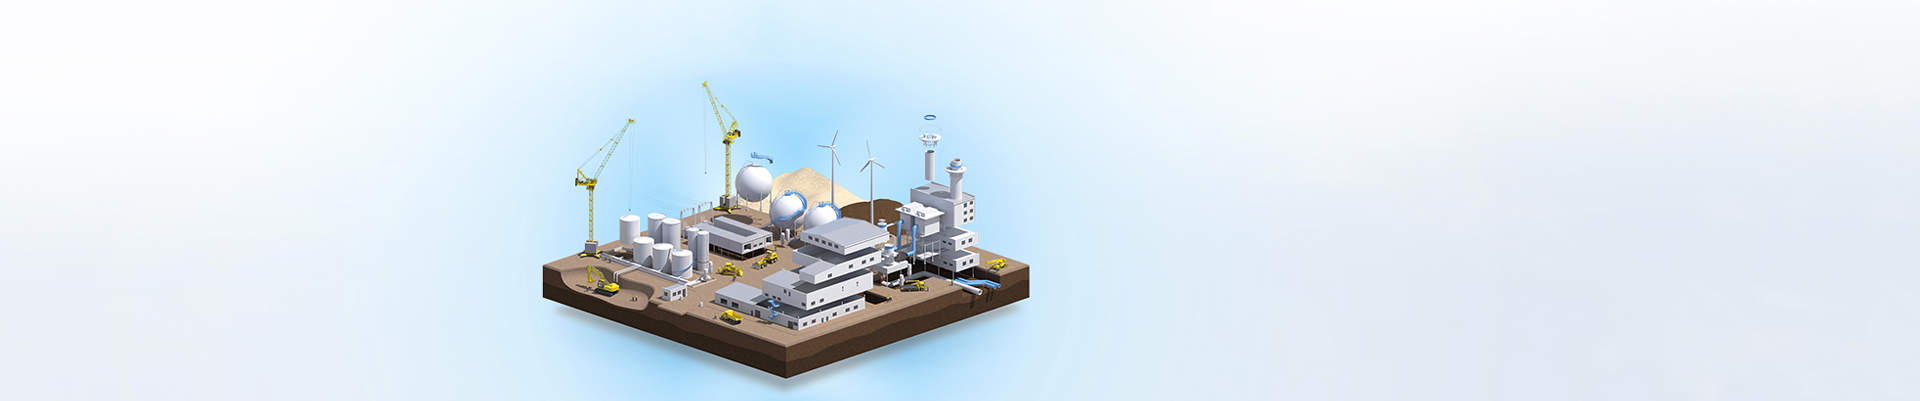 optimized-plant-construction-energy-process-utilities-1920X400.jpg